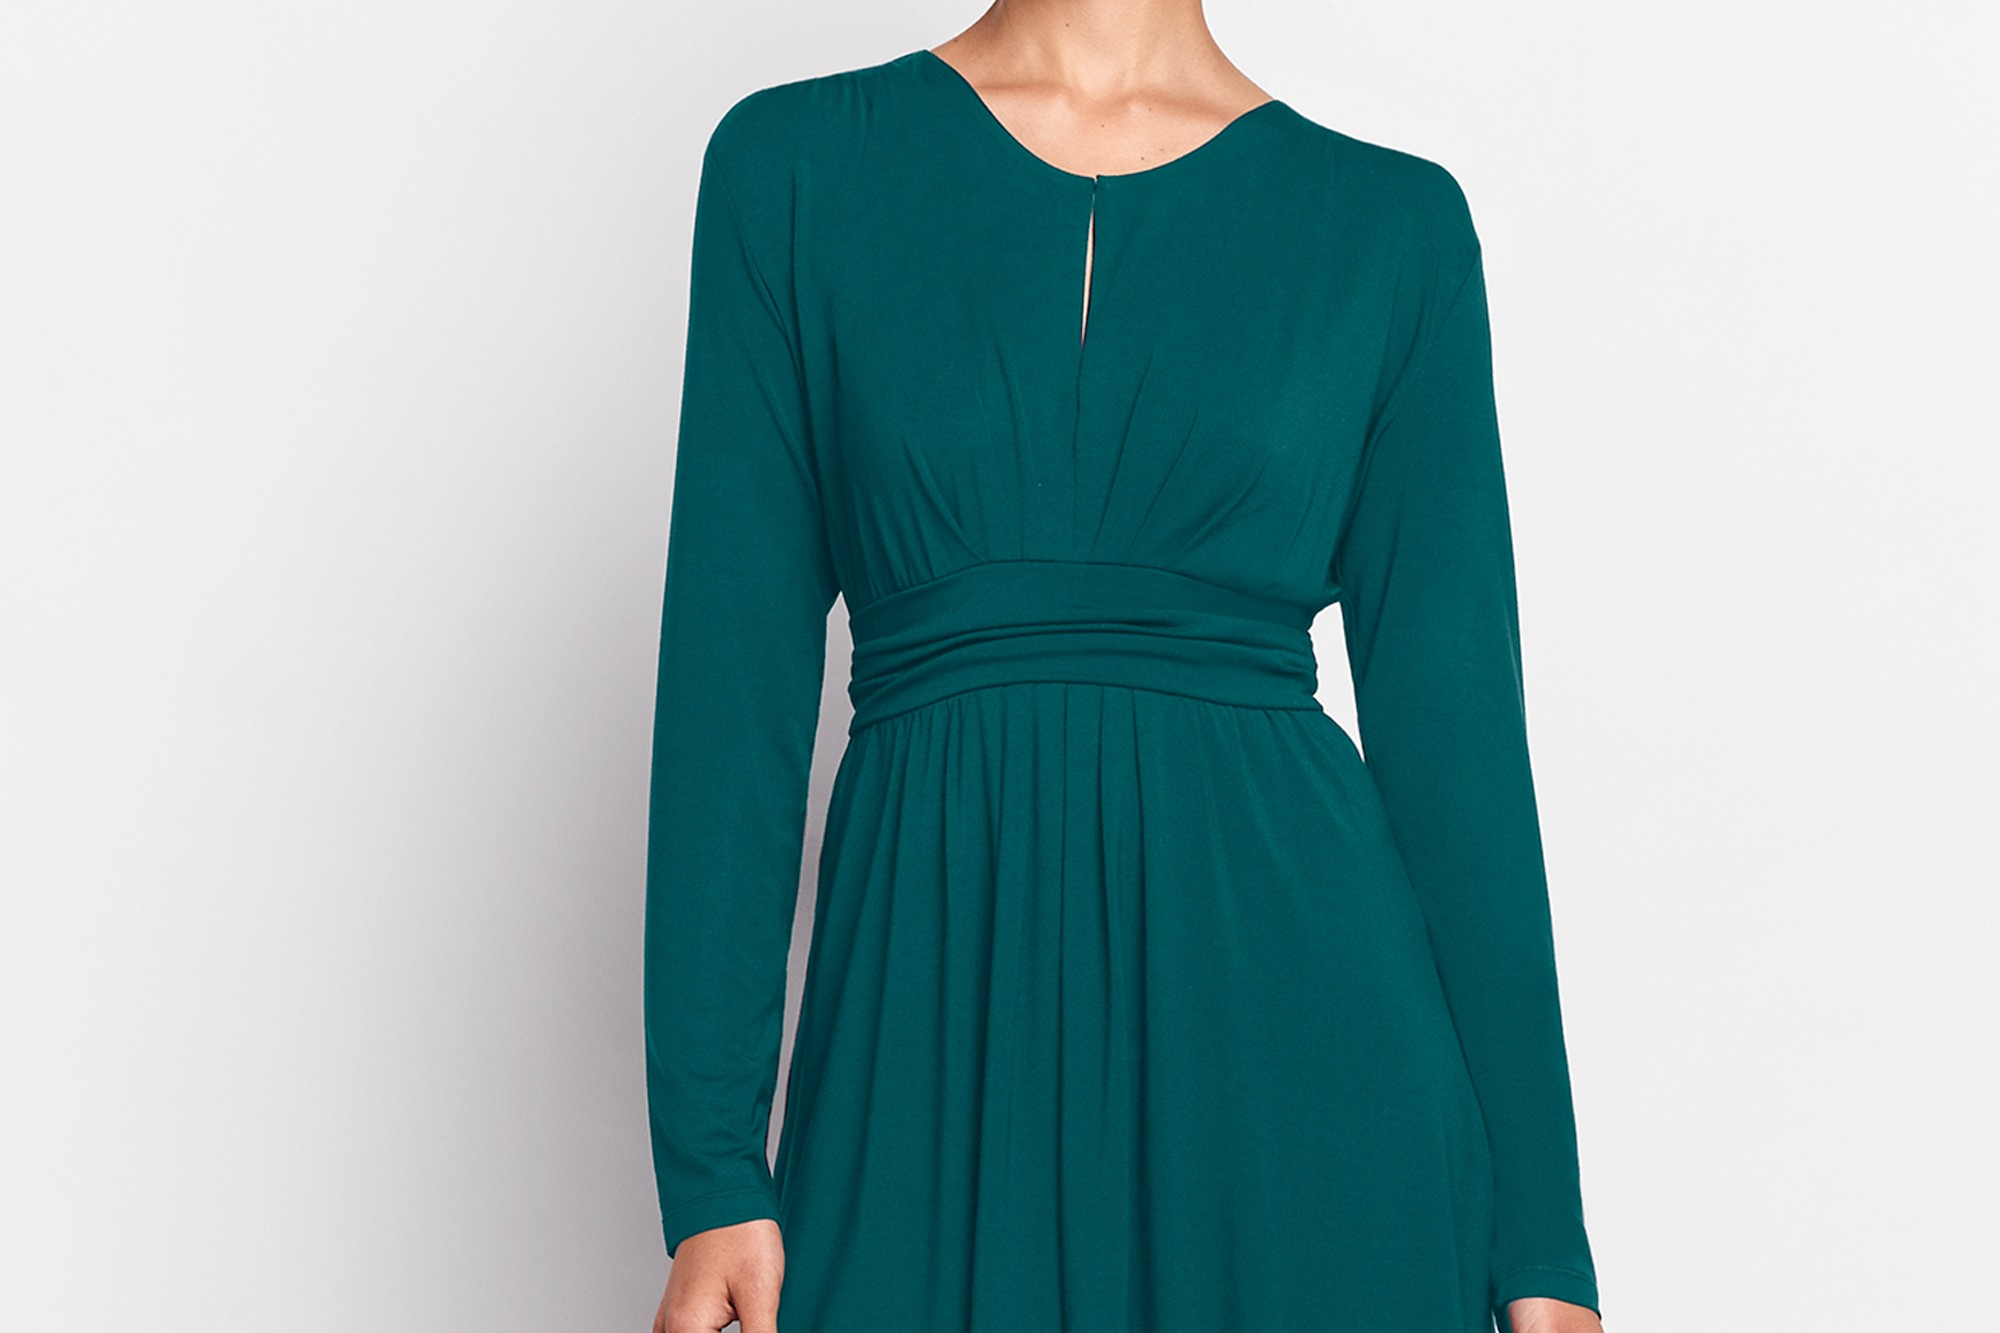 Teal Cornelia Dress Detail | Of Mercer